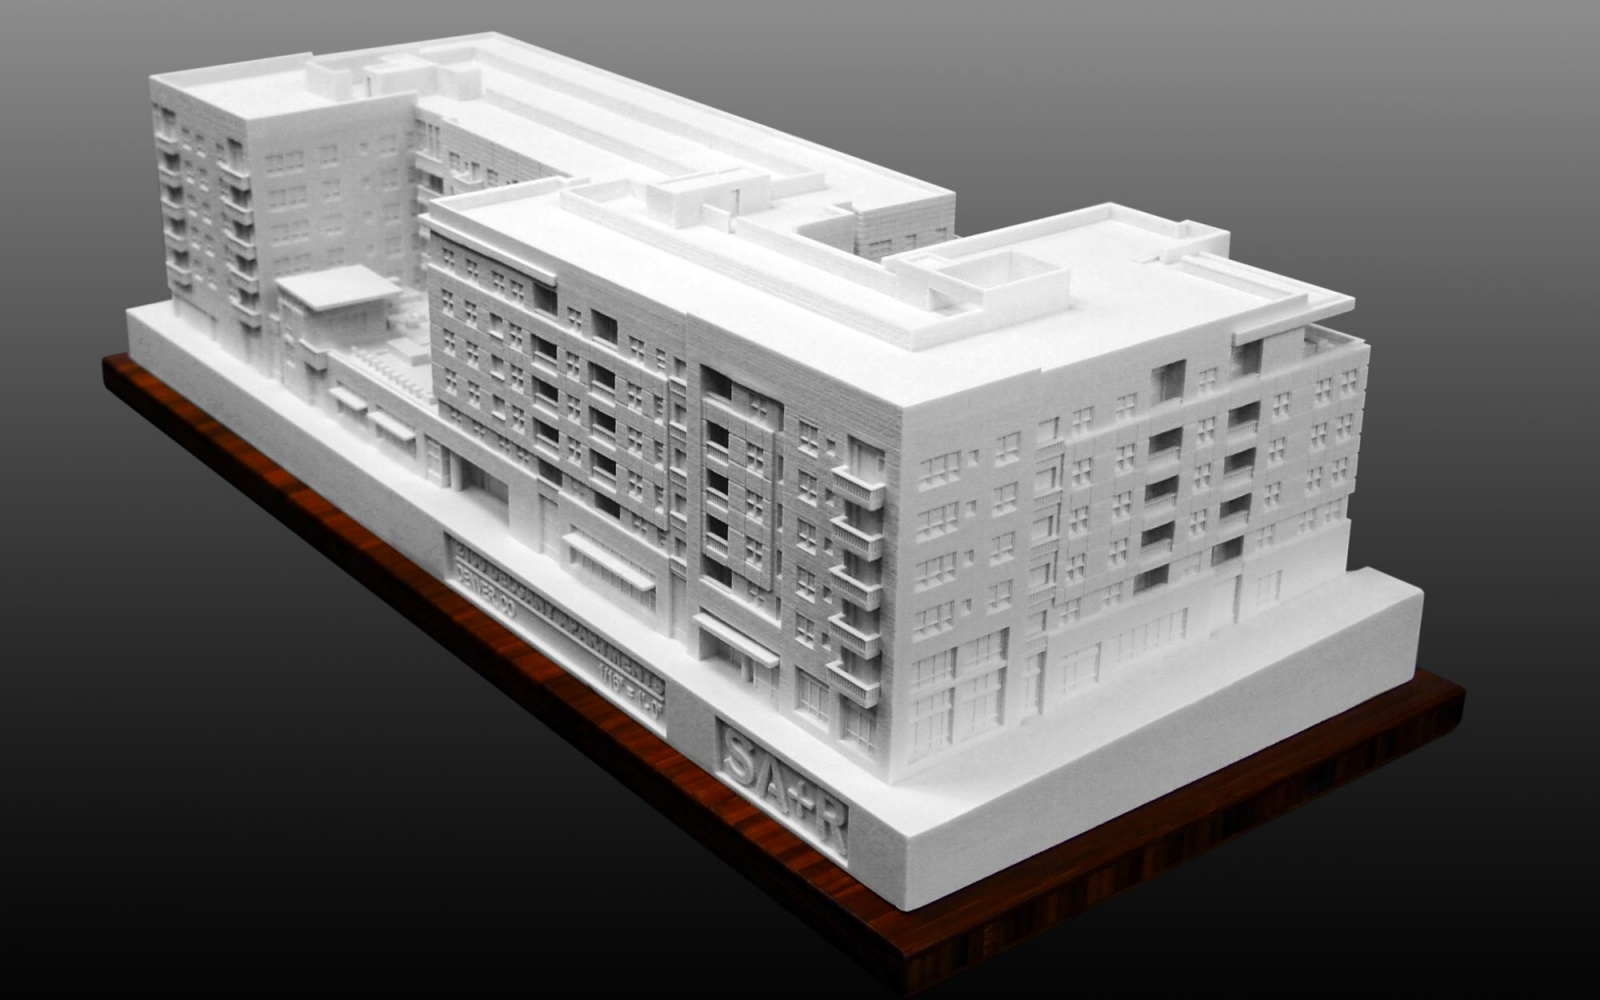 3D Printed model of proposed Apartment Complex